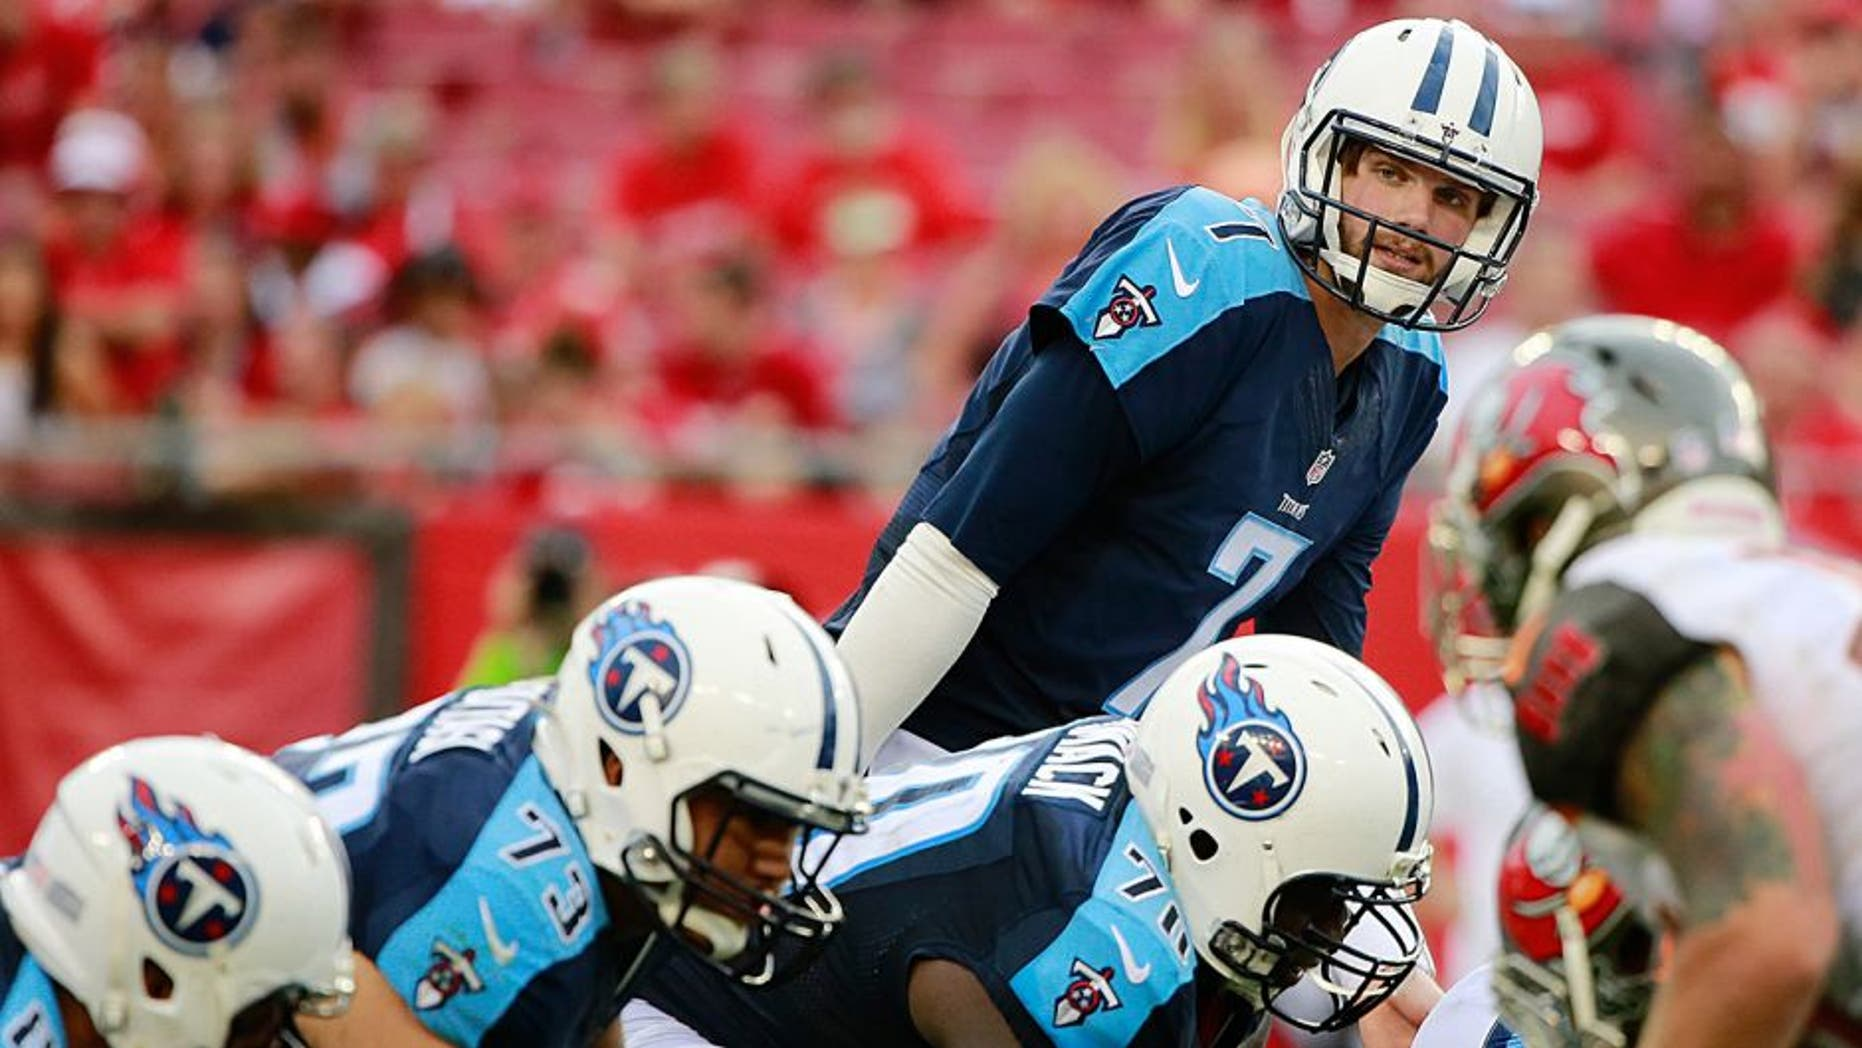 Sep 13, 2015; Tampa, FL, USA; Tennessee Titans quarterback Zach Mettenberger (7) looks on against the Tampa Bay Buccaneers during the second half at Raymond James Stadium. Tennessee Titans defeated the Tampa Bay Buccaneers 42-14. Mandatory Credit: Kim Klement-USA TODAY Sports